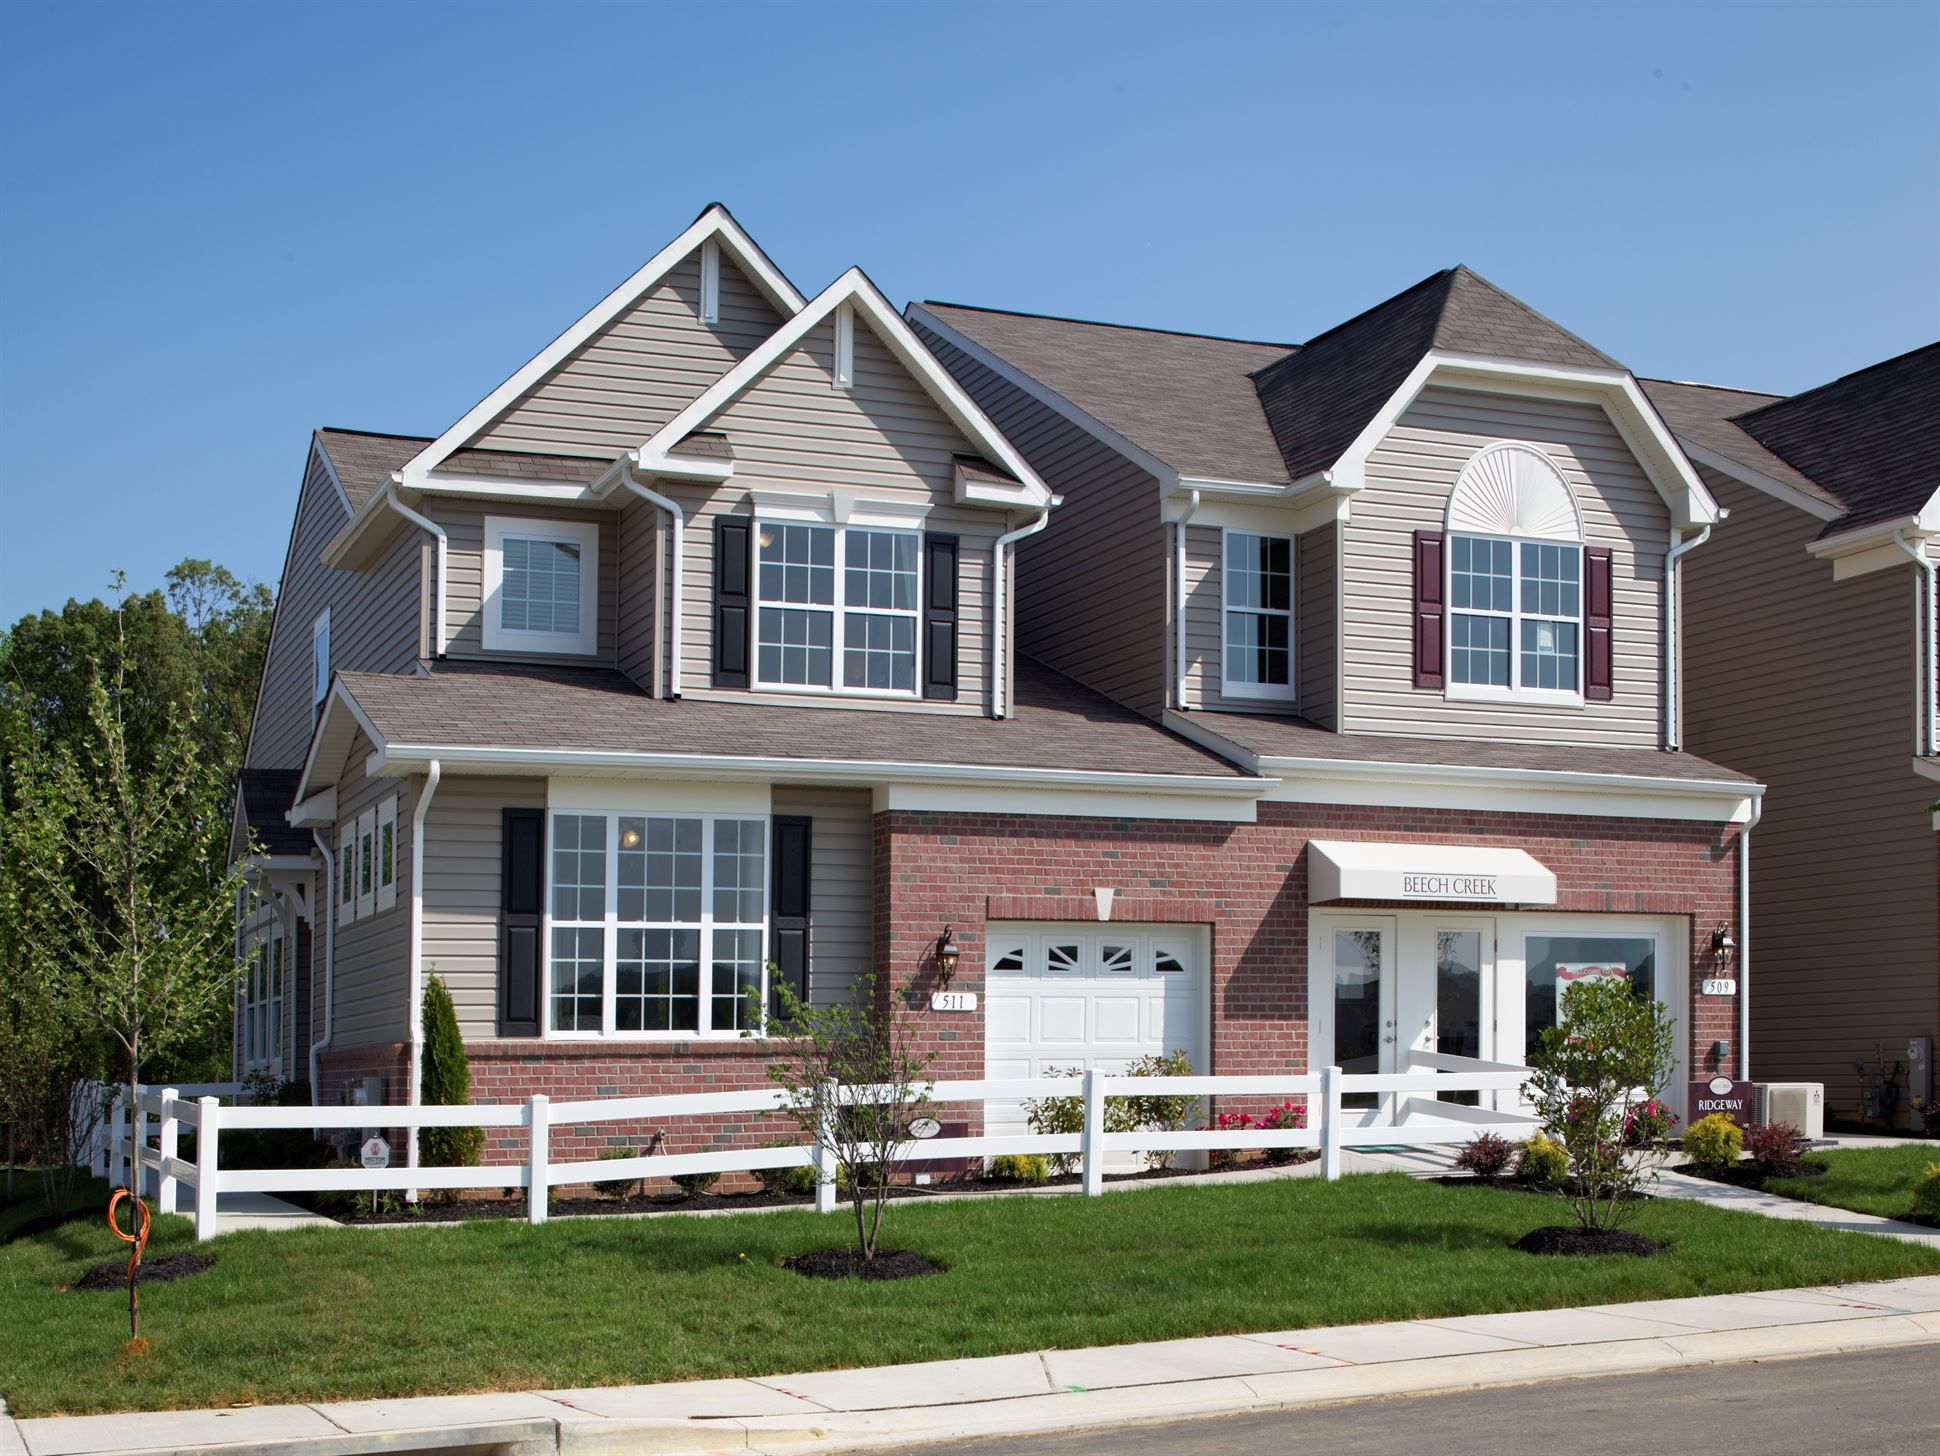 Calatlantic Homes Chatfield A Of The Marriott S Choice Villas Community In Randallstown Md New Homes For Sale Home New Homes